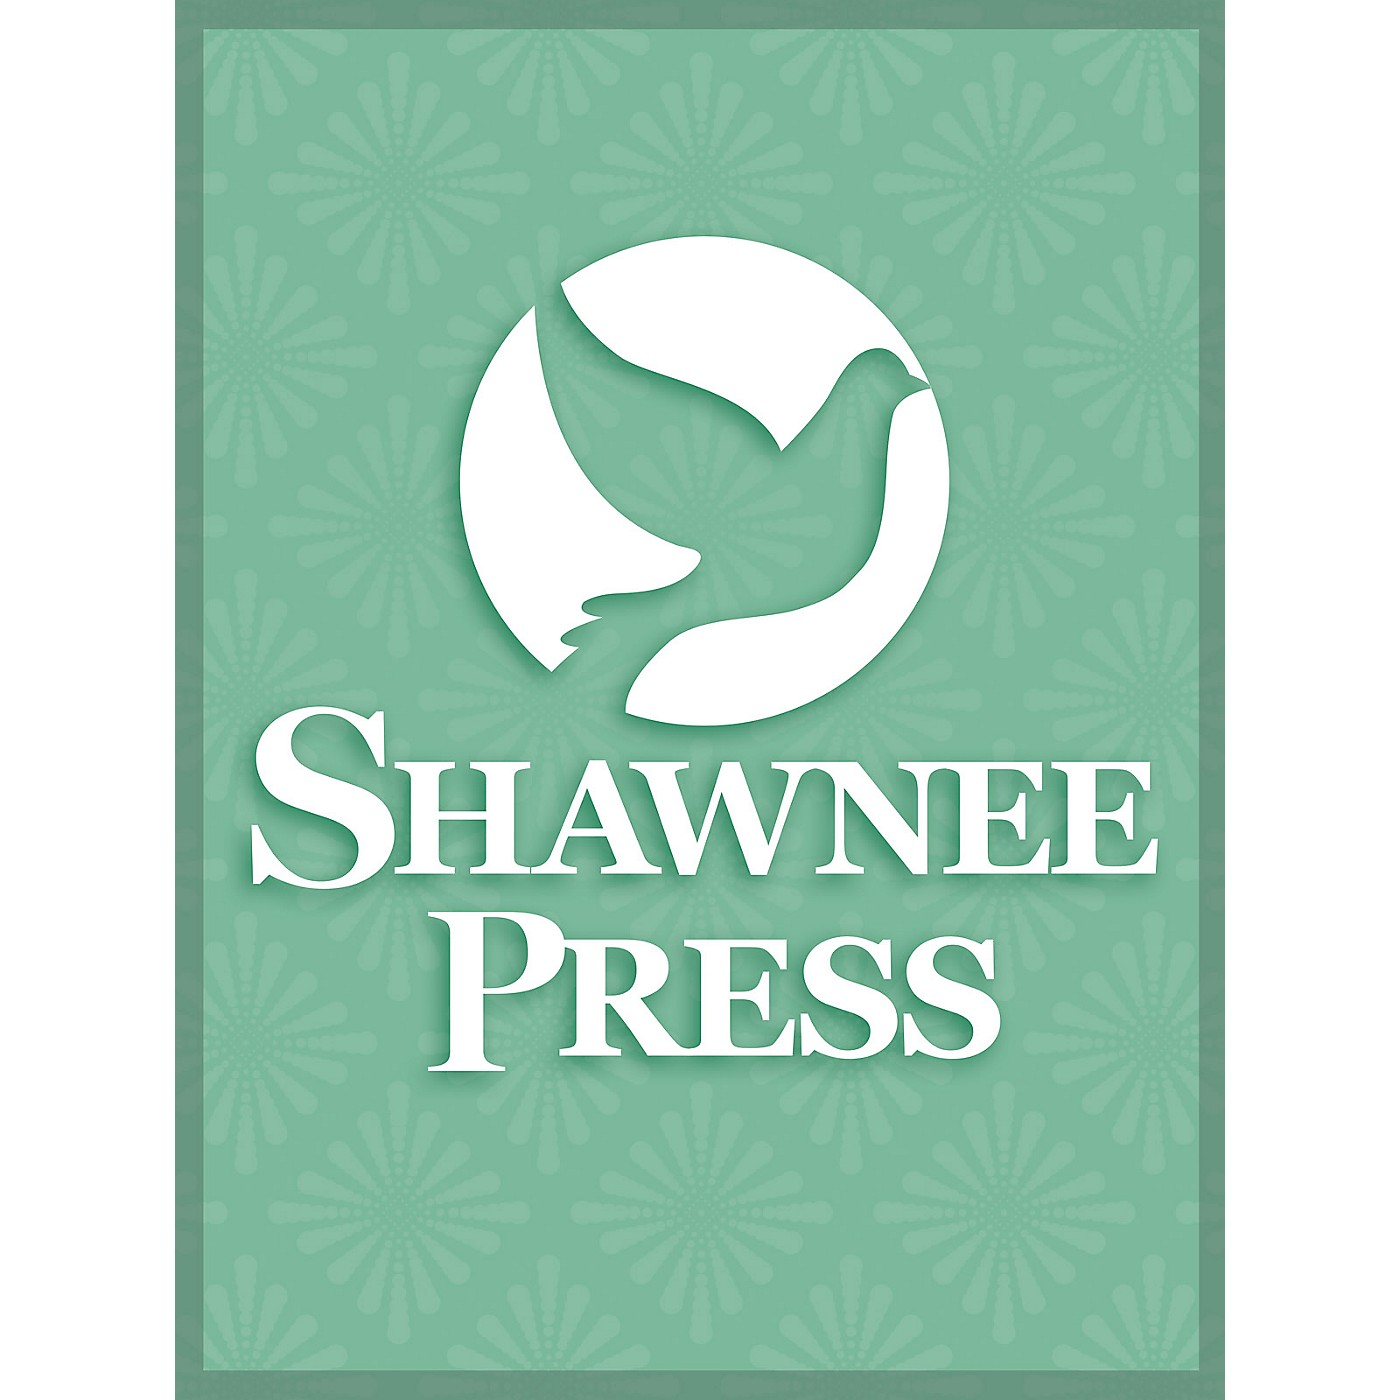 Shawnee Press Ten Jazz Duos and Solos (Bass Clef Edition) Shawnee Press Series Arranged by Hartzell thumbnail